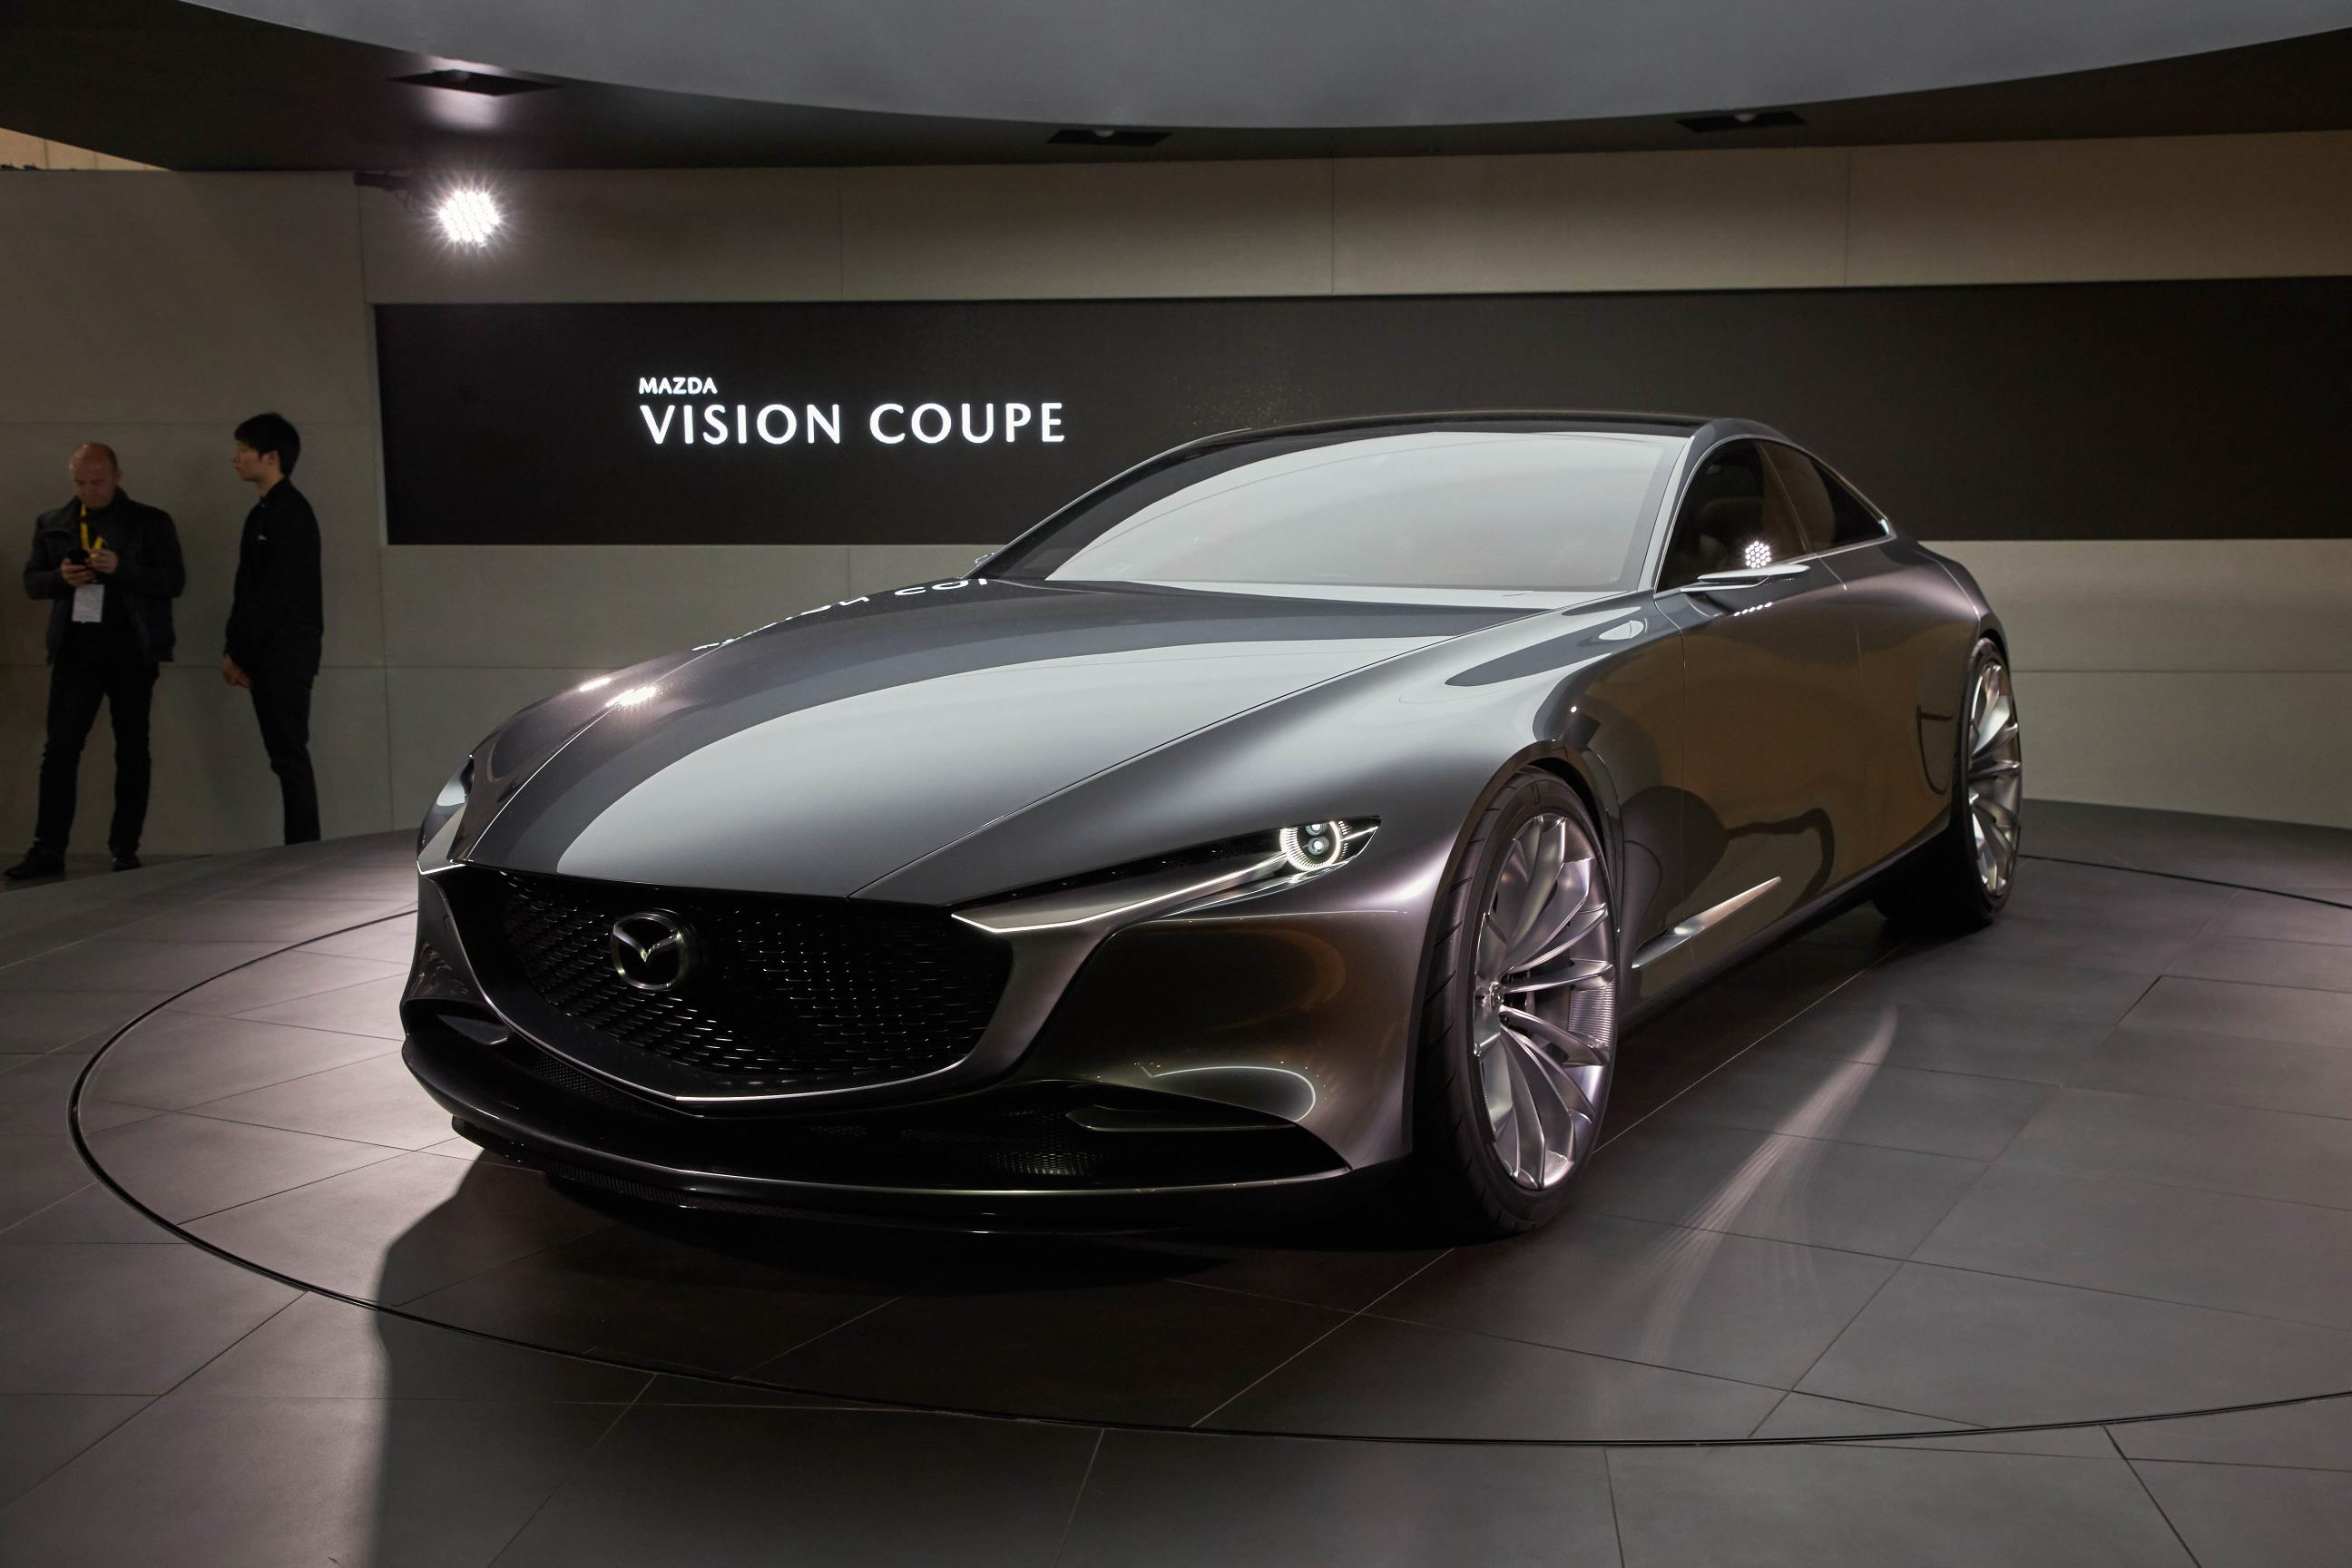 Mazda Kai And Vision Coupe Concepts Reveal Carbon Fiber In